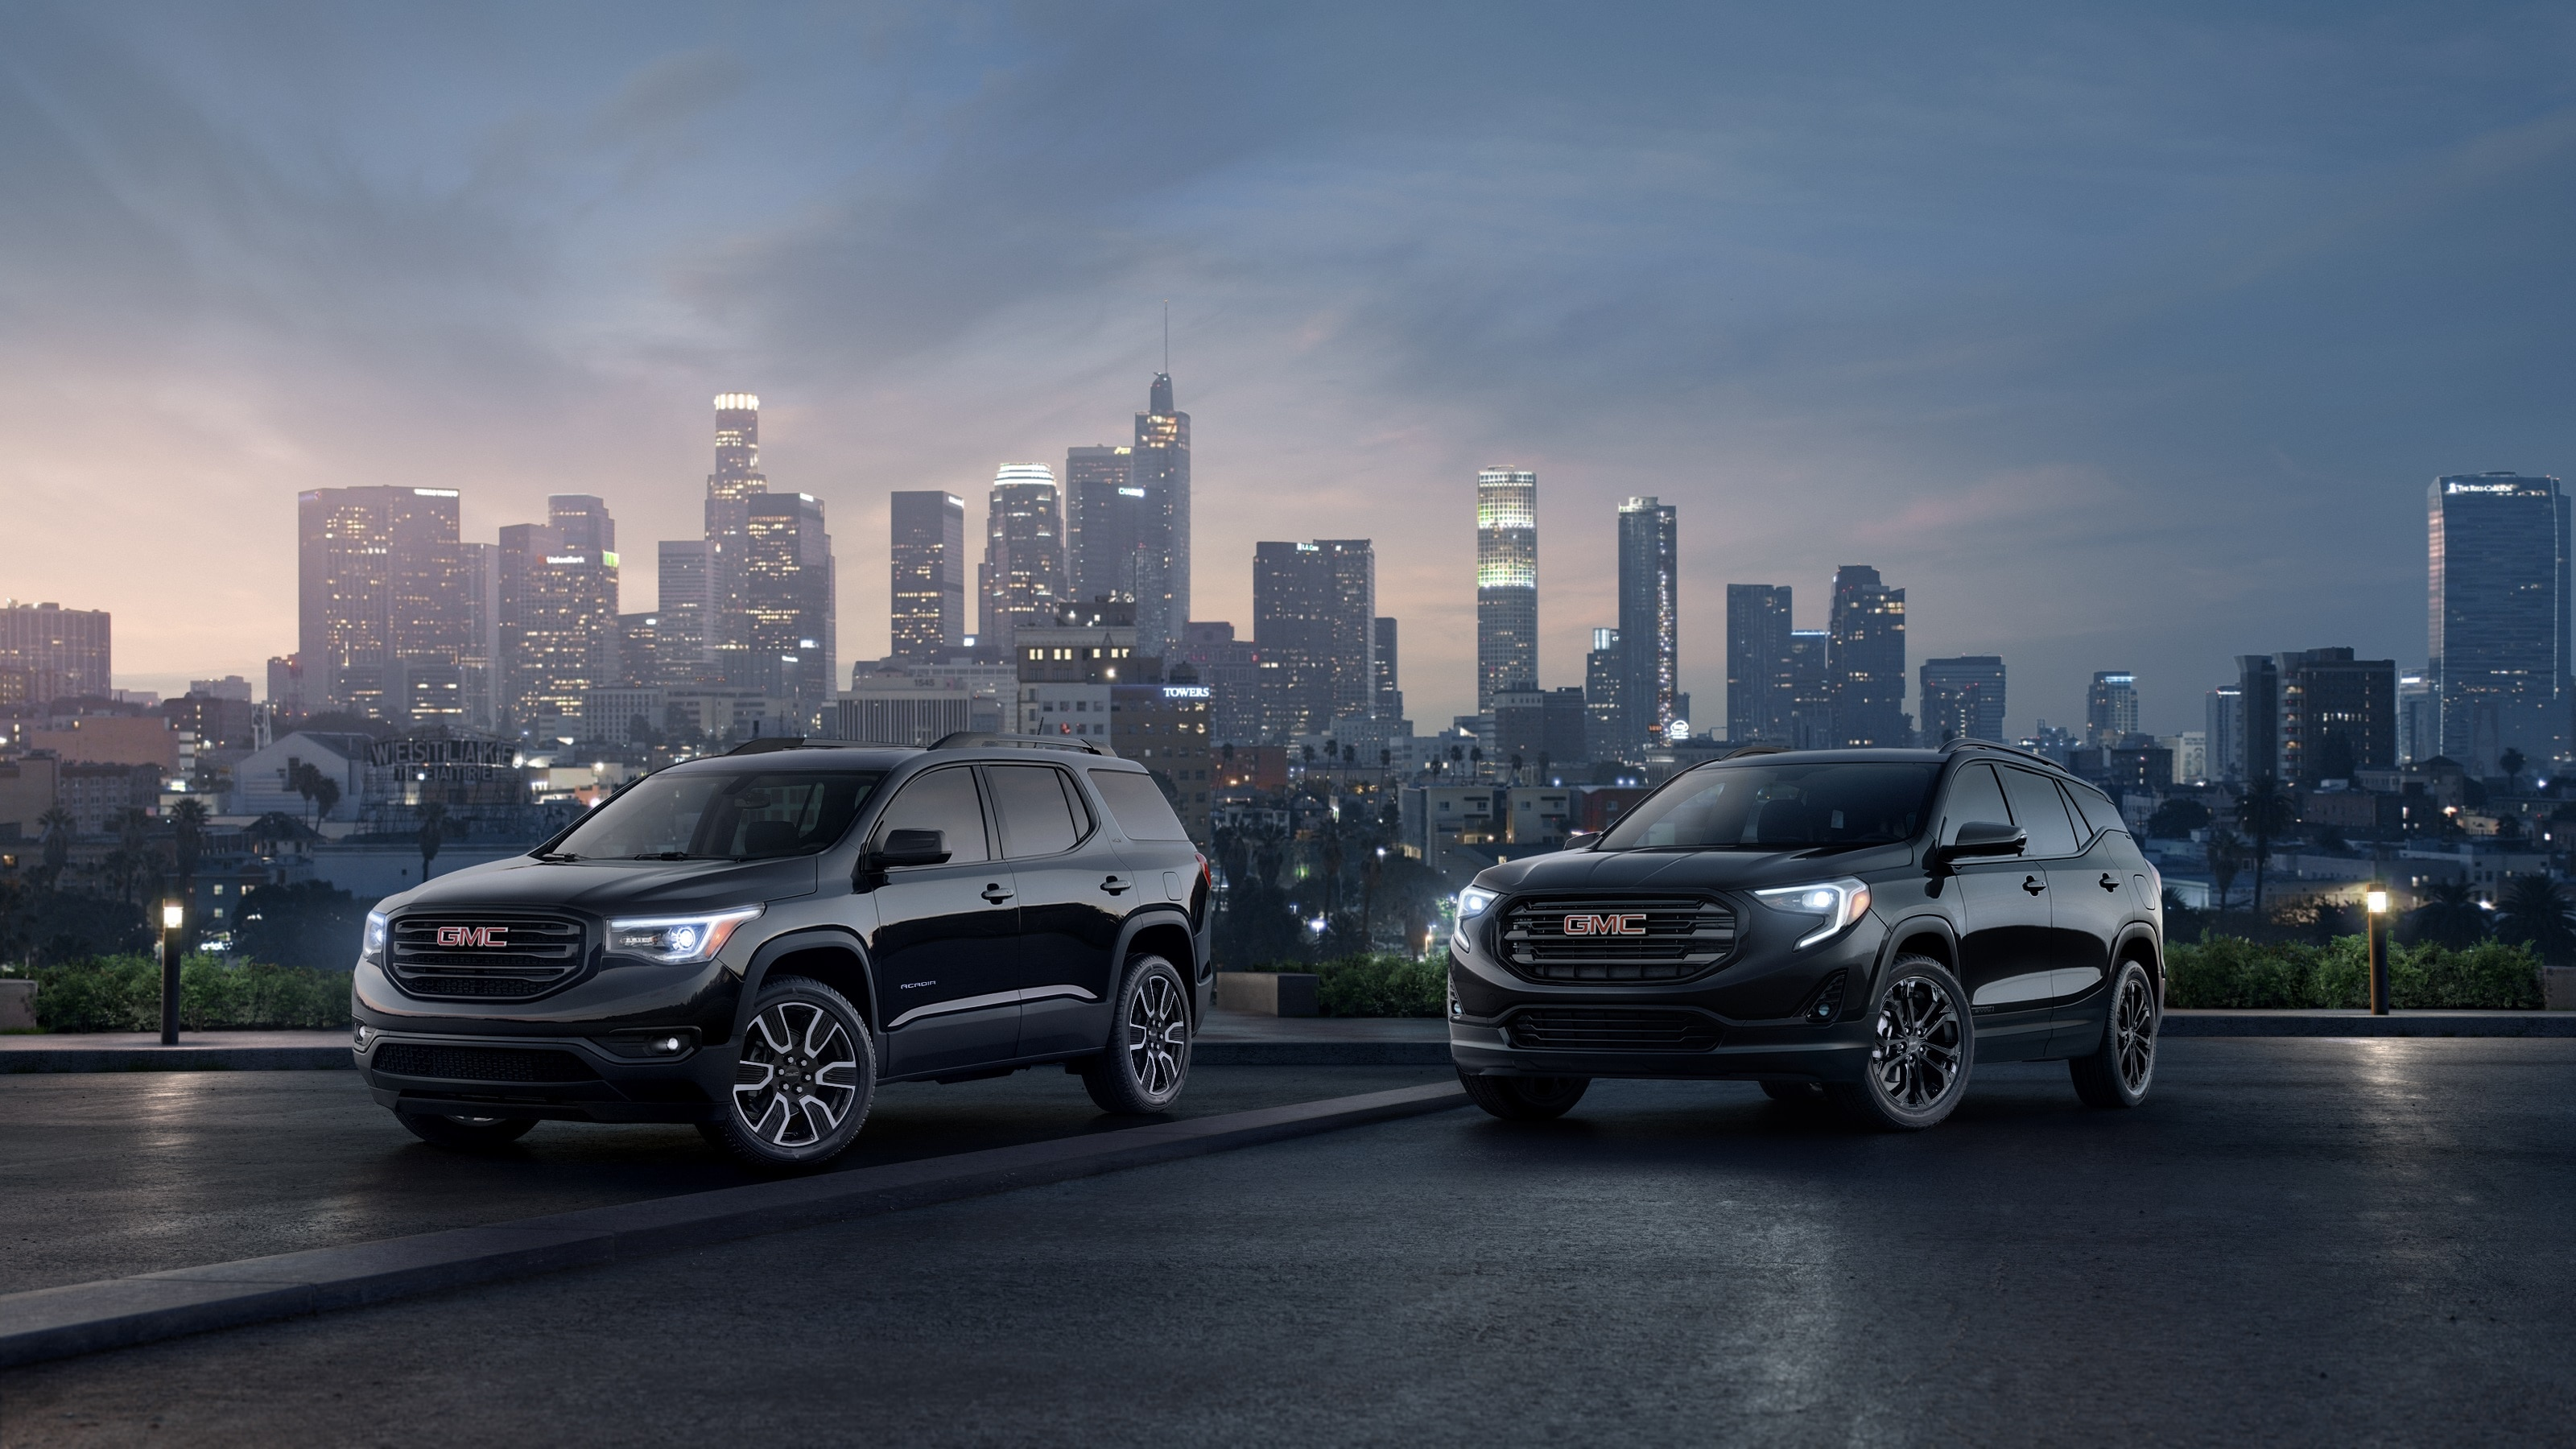 Gmc Acadia For Sale >> 2019 GMC Acadia and Terrain Sport Black Editions for New ...